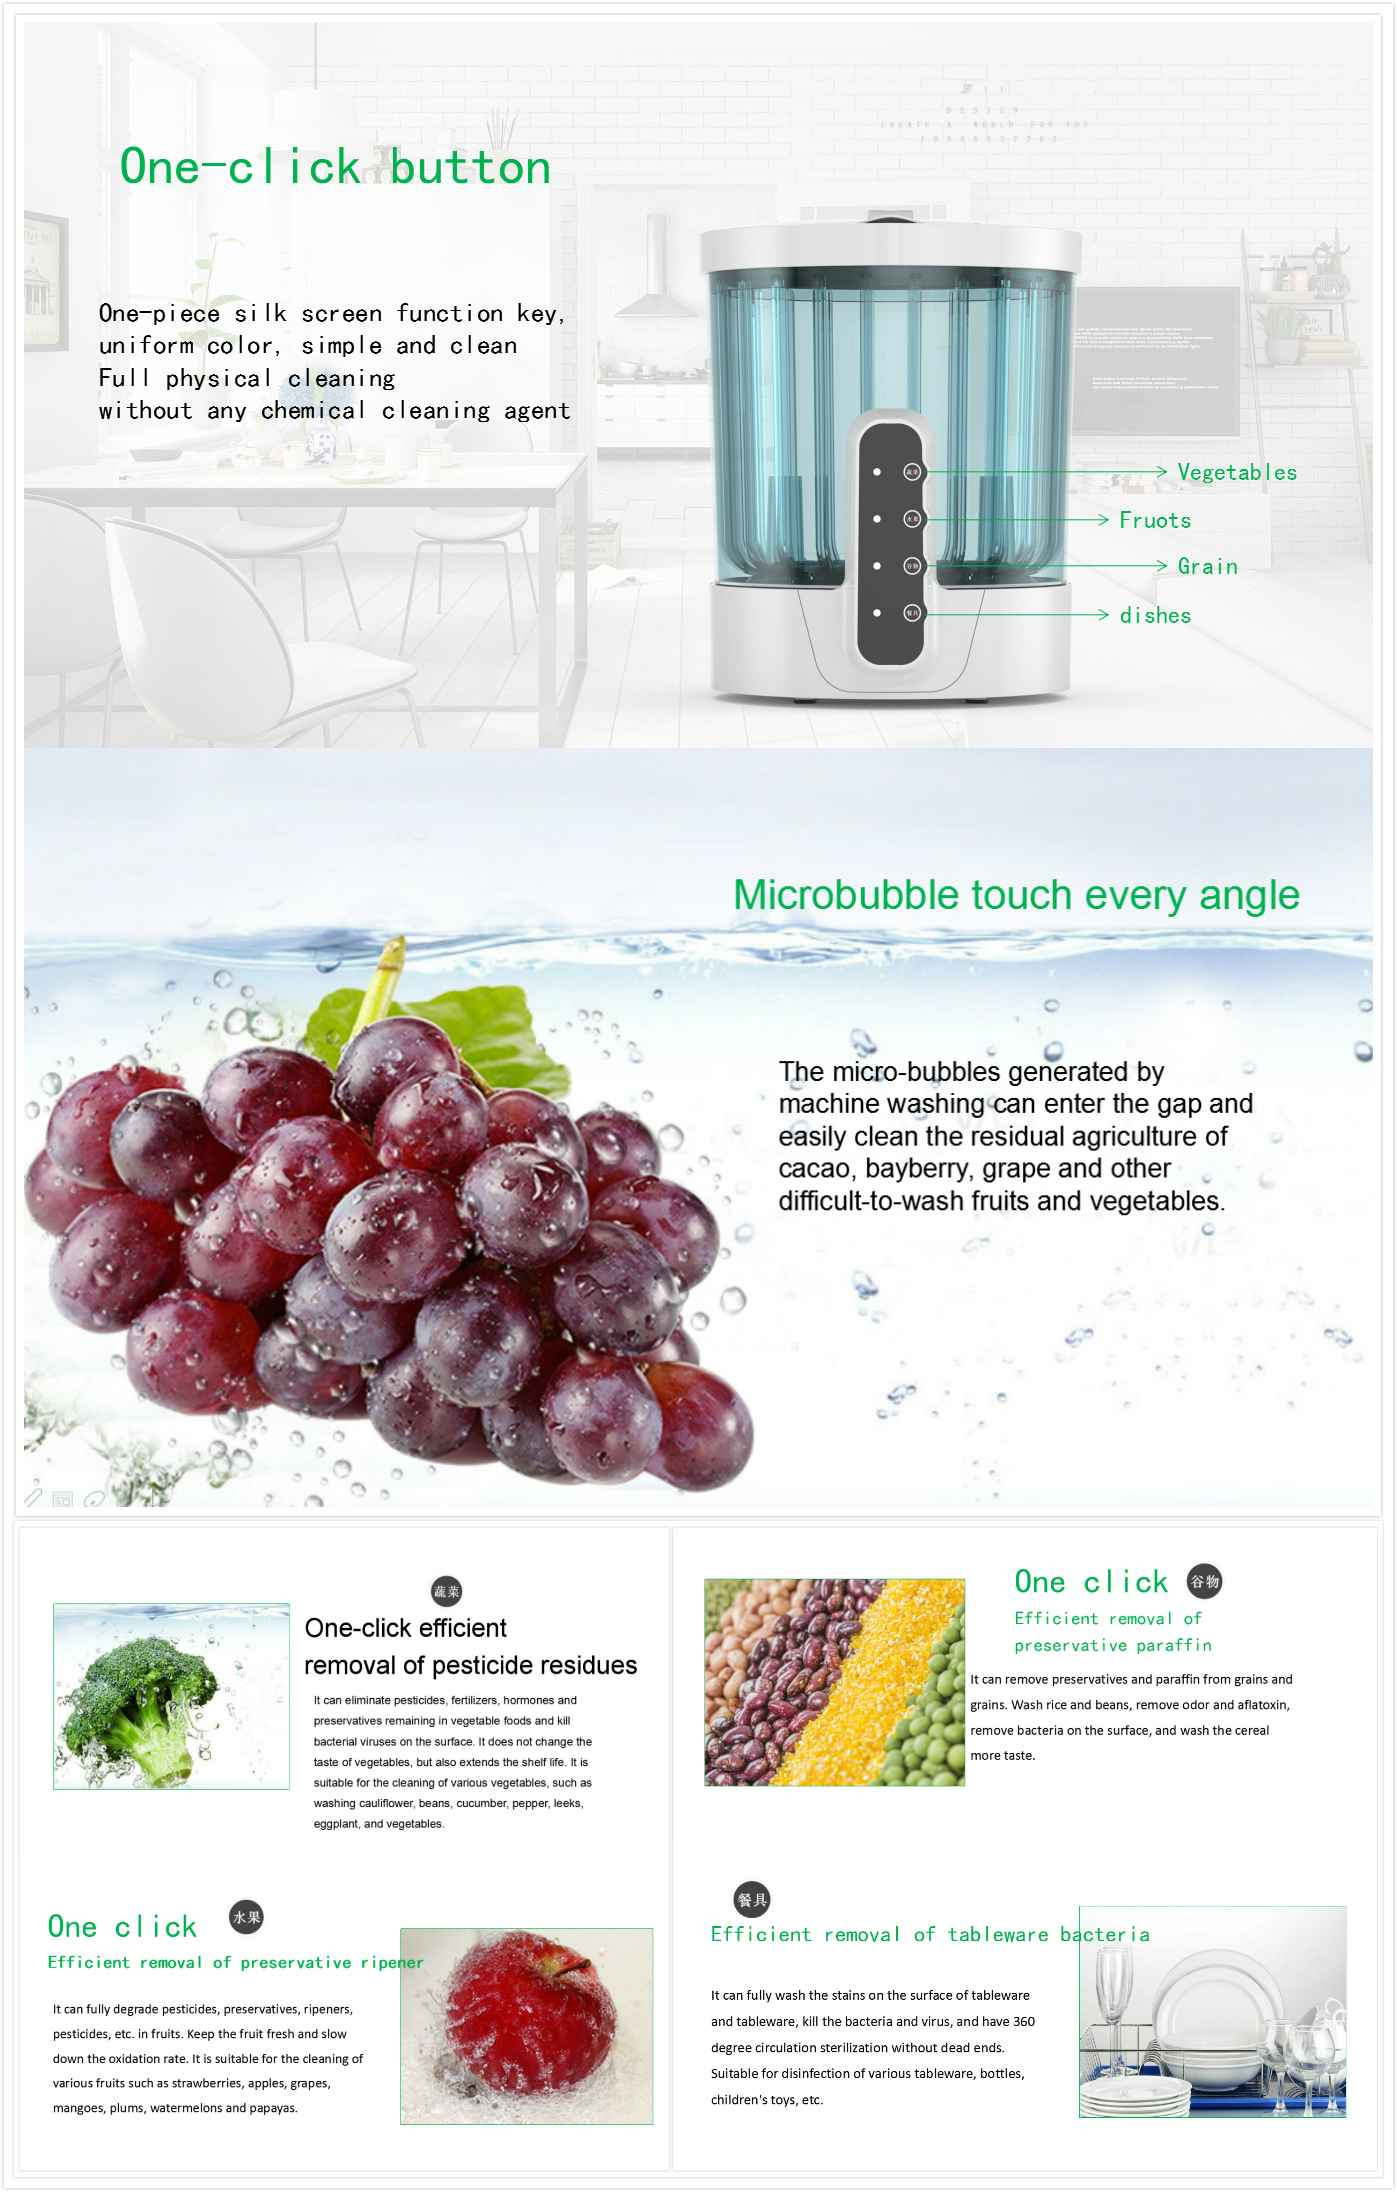 What is fruit and vegetable cleaner?